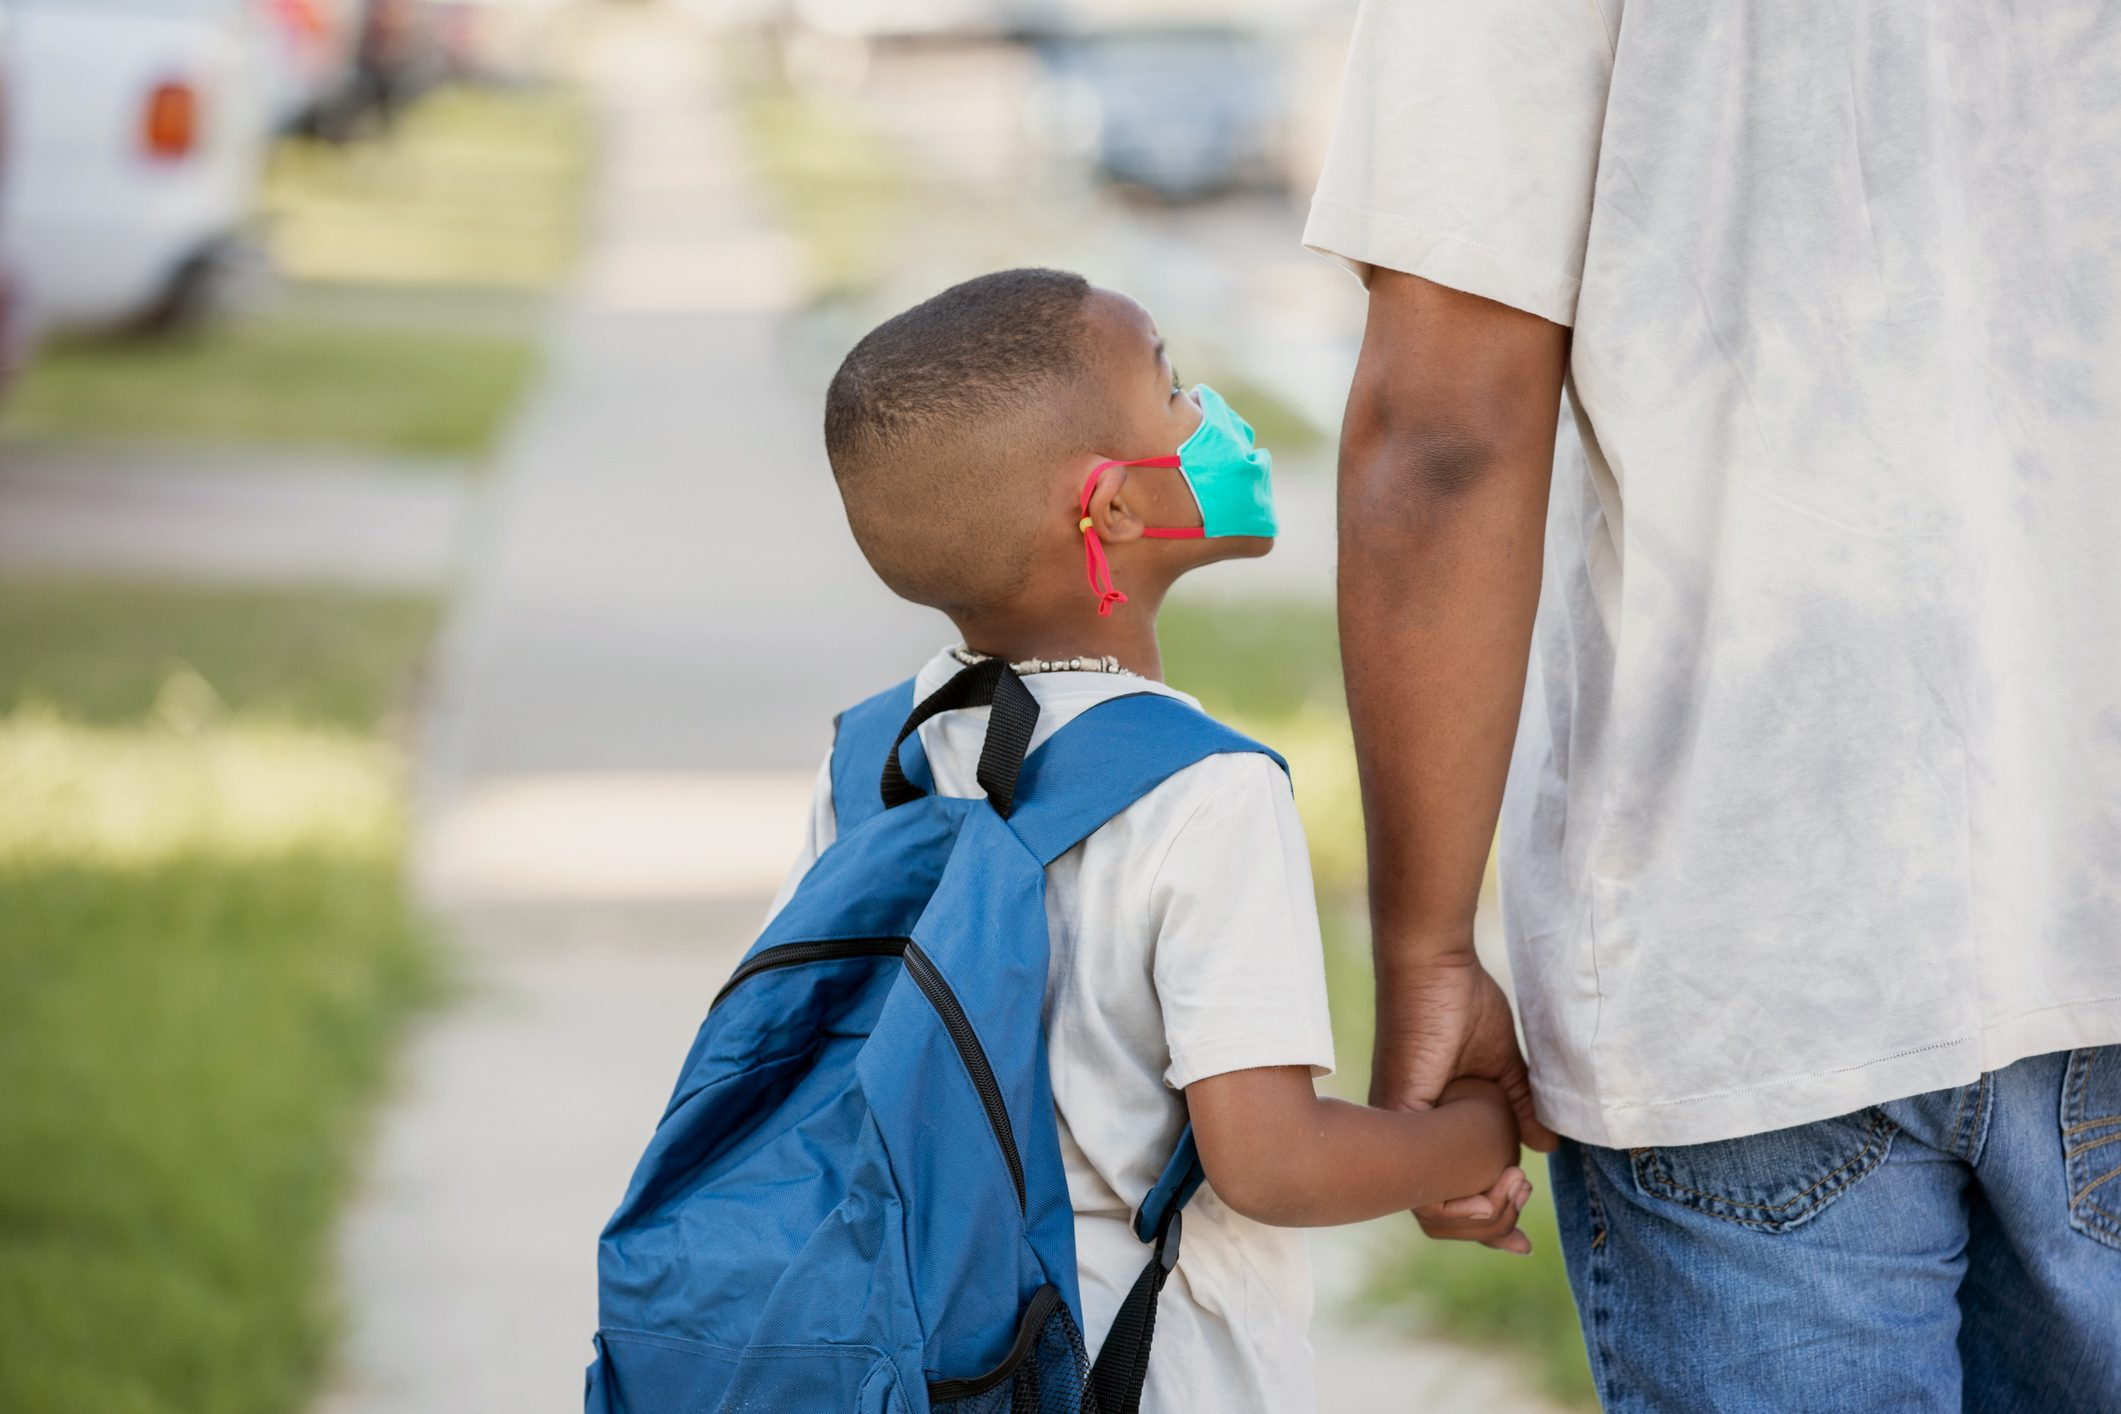 young boy holding his father's hand while walking to school with backpack and face mask